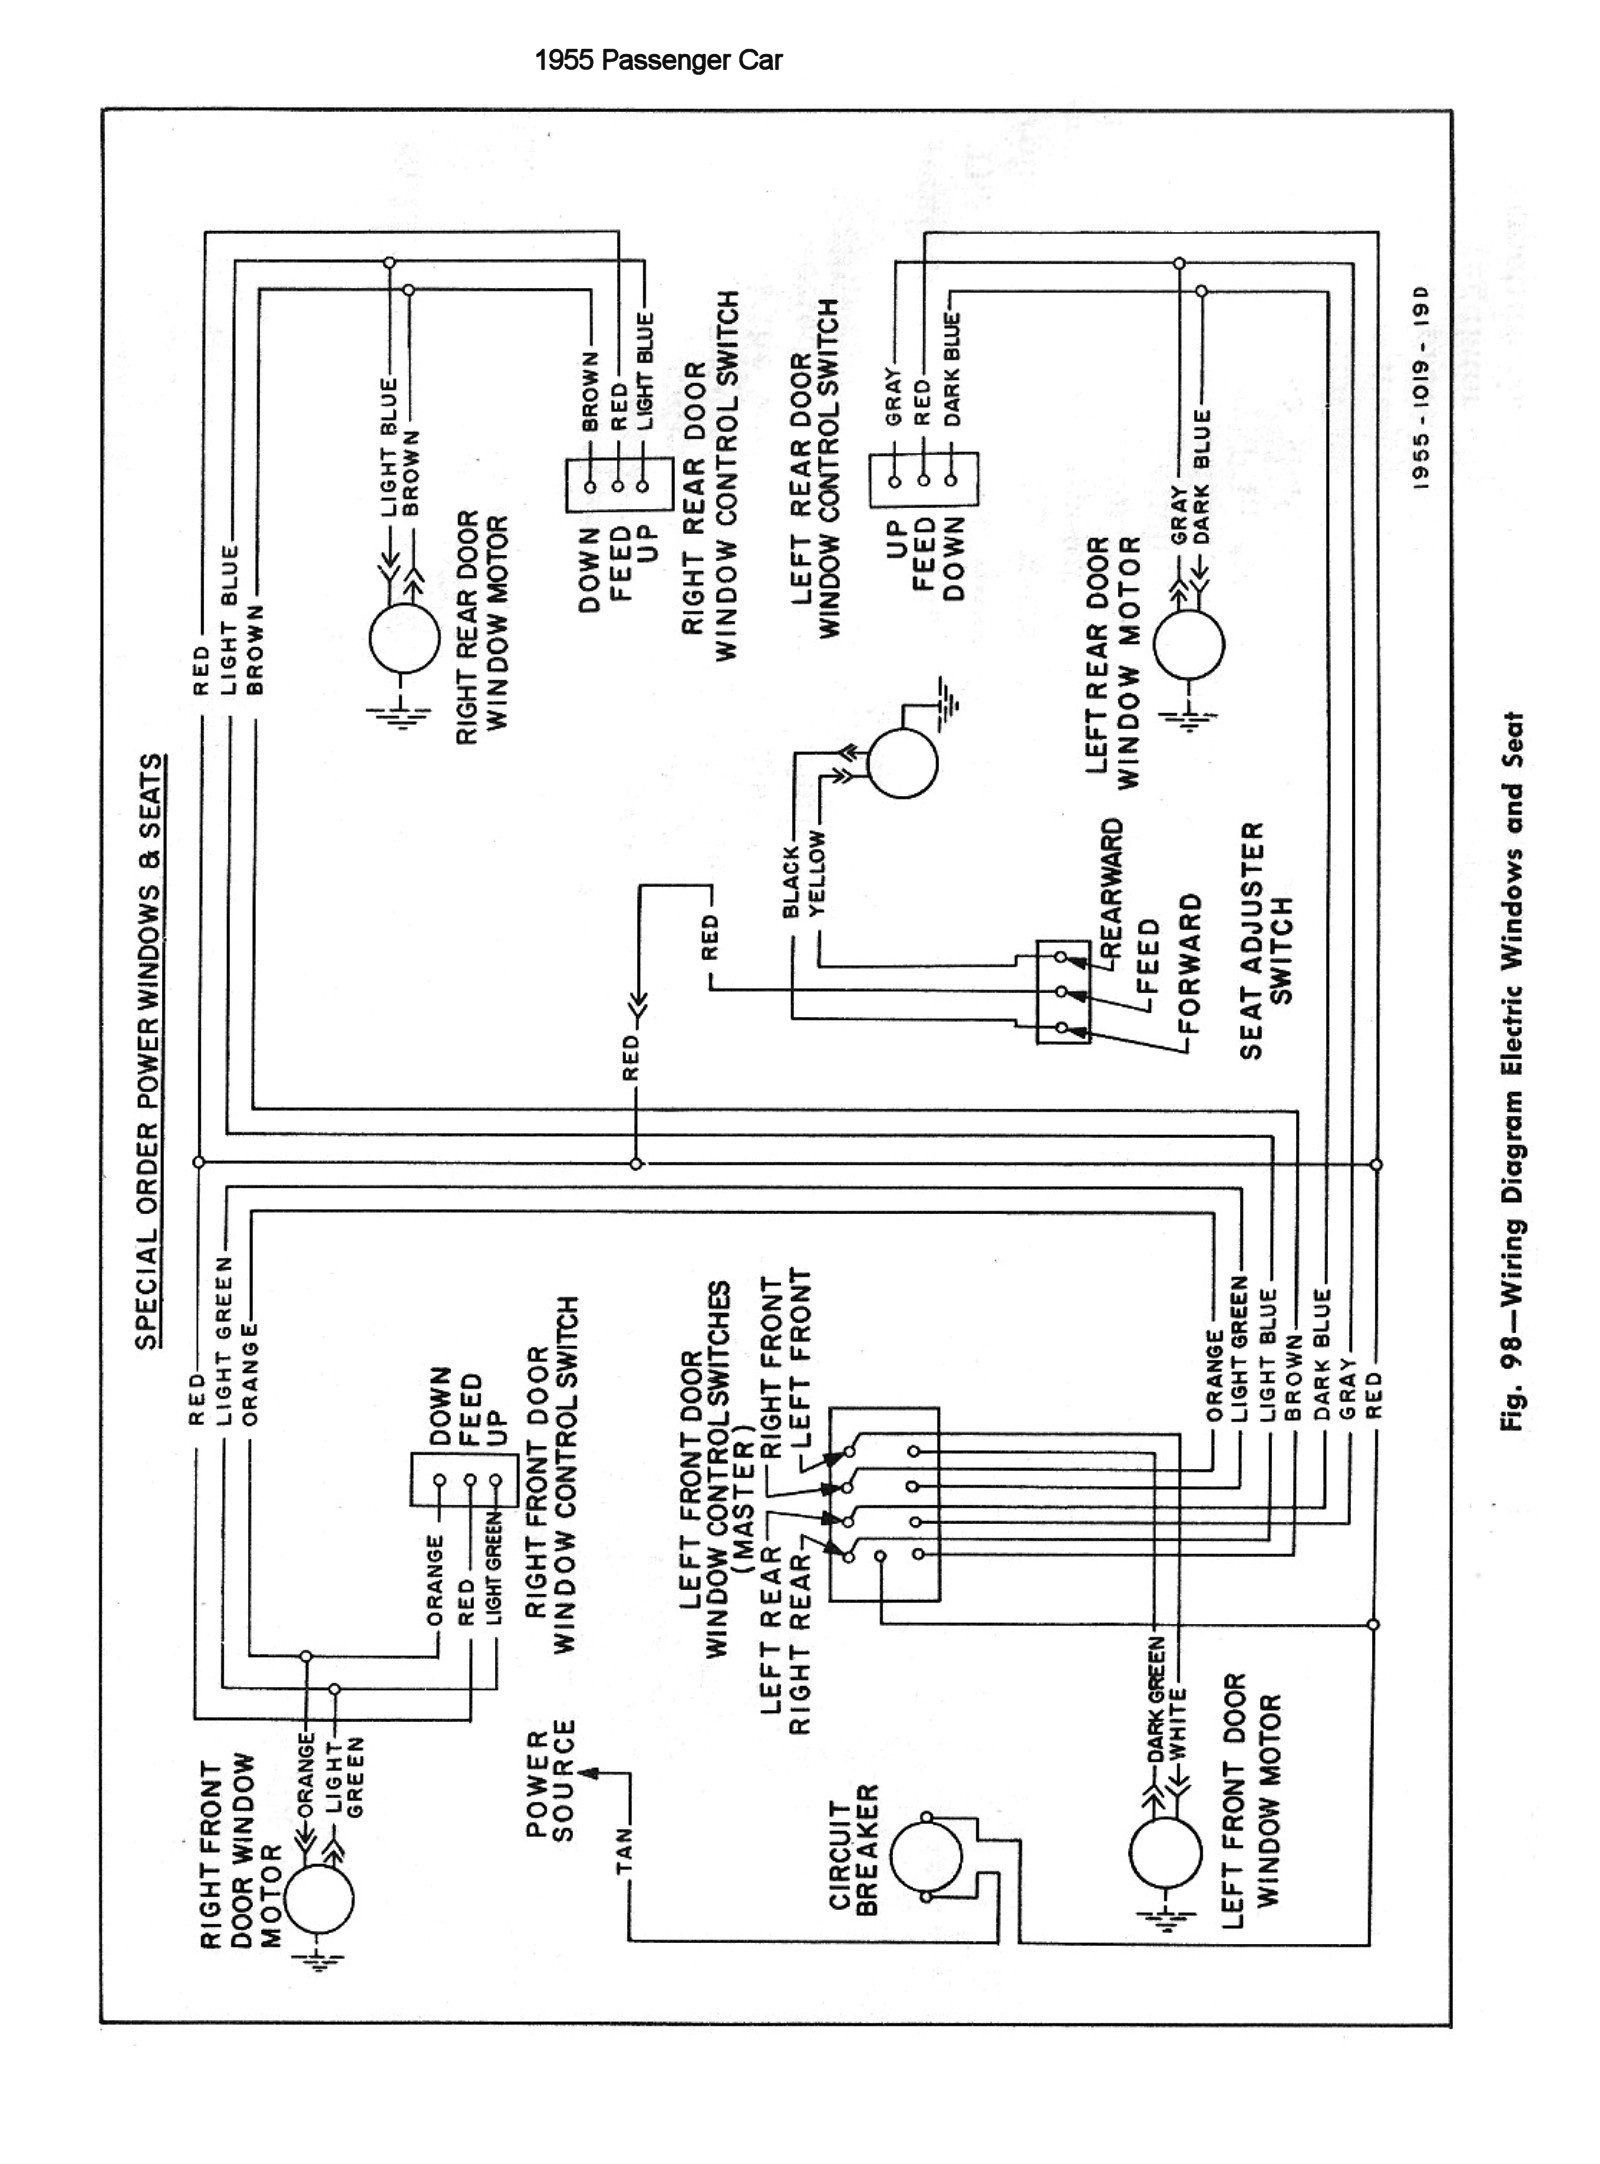 1955 Chevy Turn Signal Wiring Diagram | WiringDiagram.org | Chevy trucks,  Diagram, 1955 chevy | Turn Signal Switch Wiring Schematics |  | Pinterest